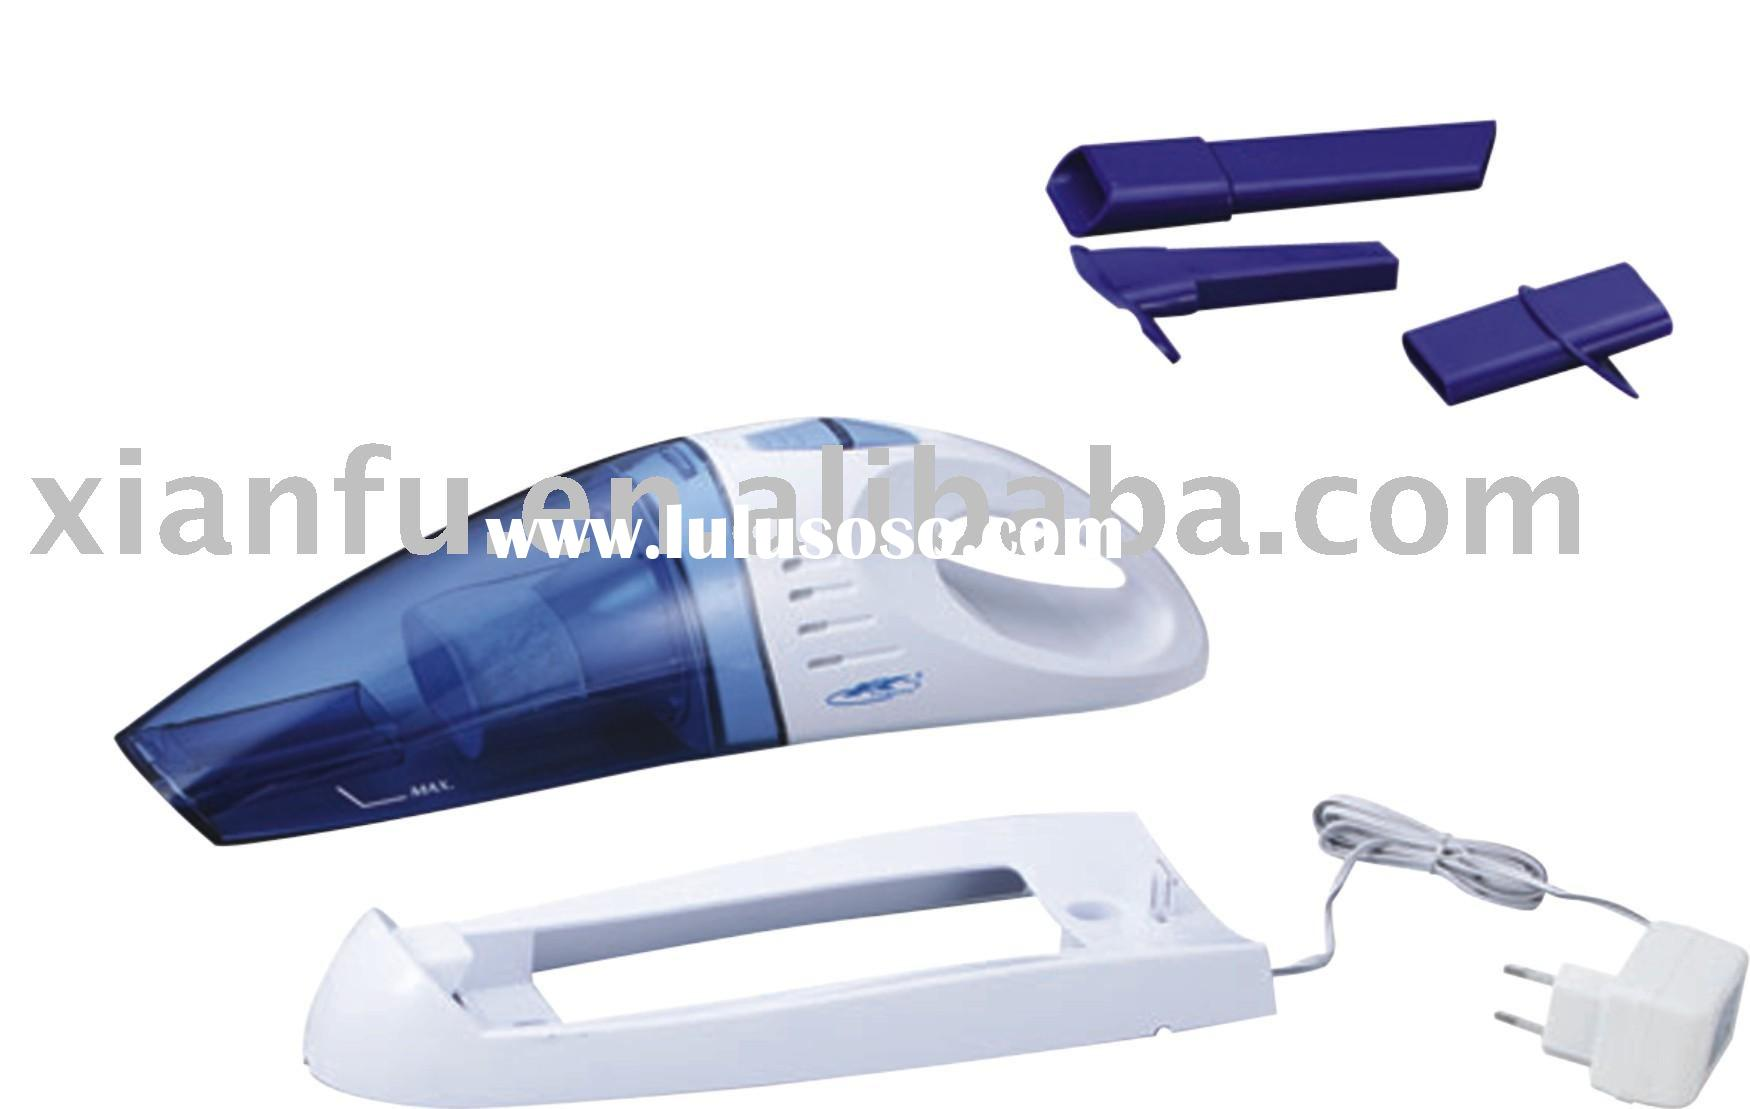 portable handheld rechargeable vacuum cleaner